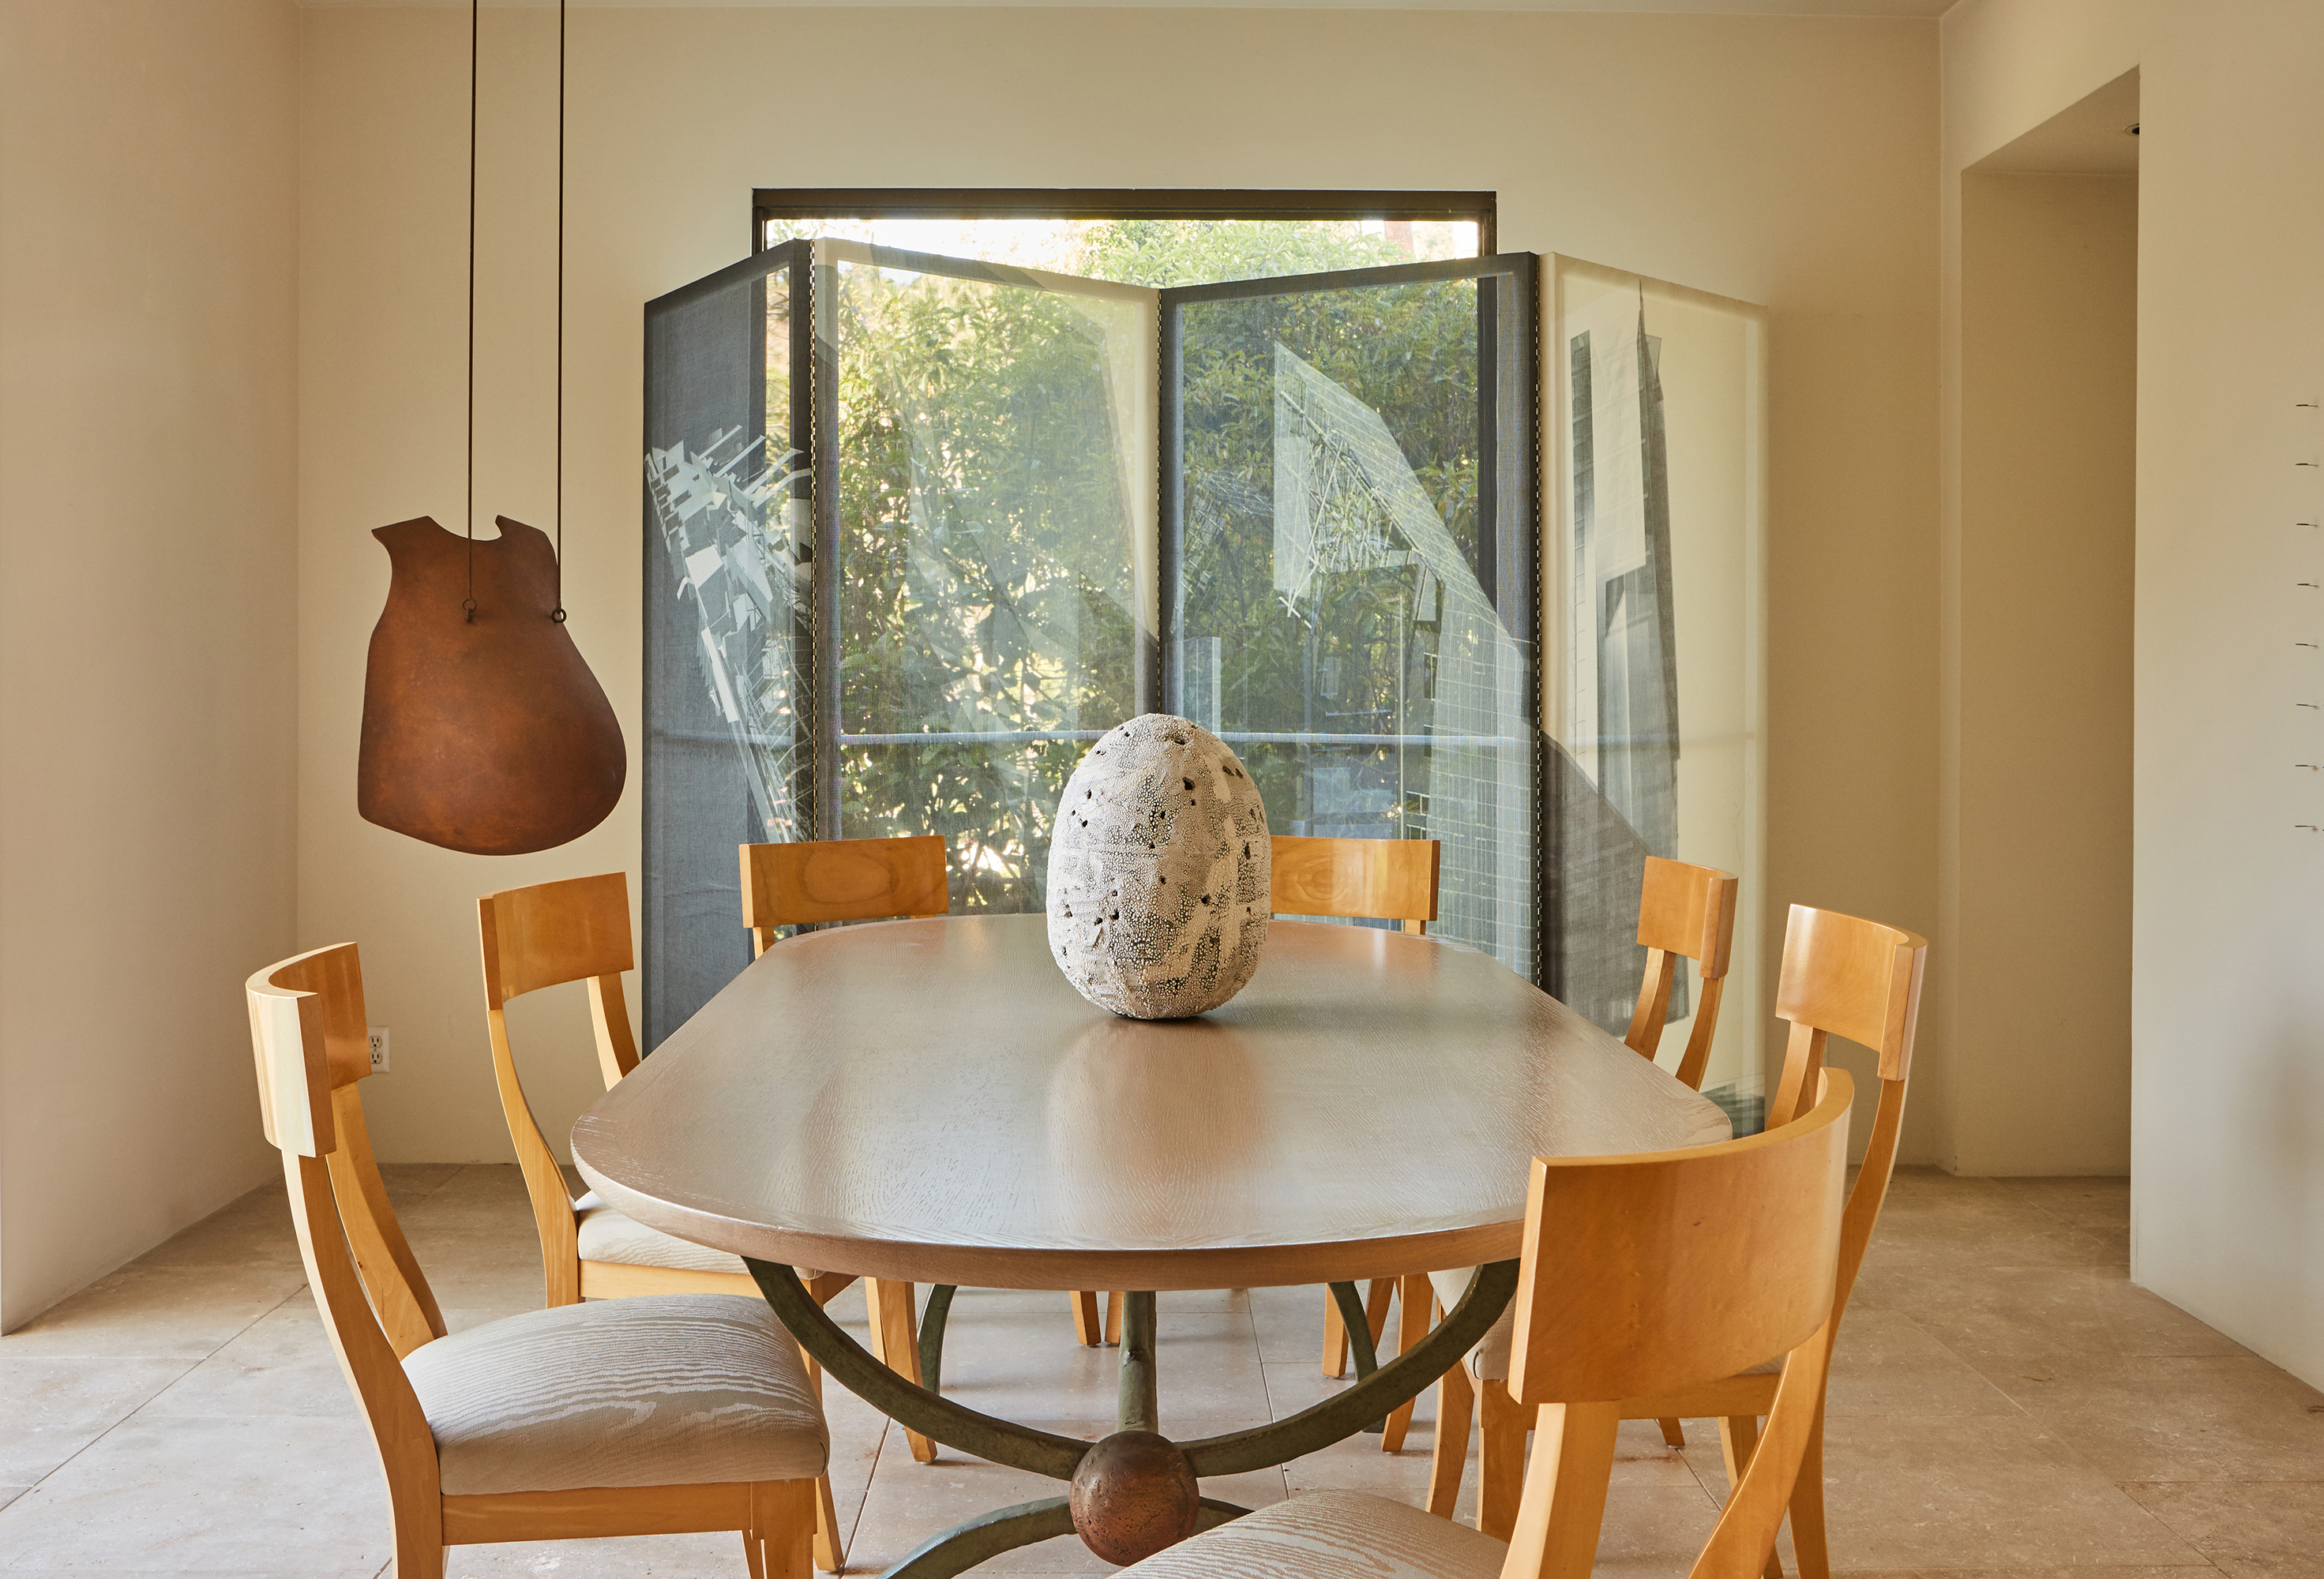 Dining Table Sets  StealASofa Furniture Outlet in Los